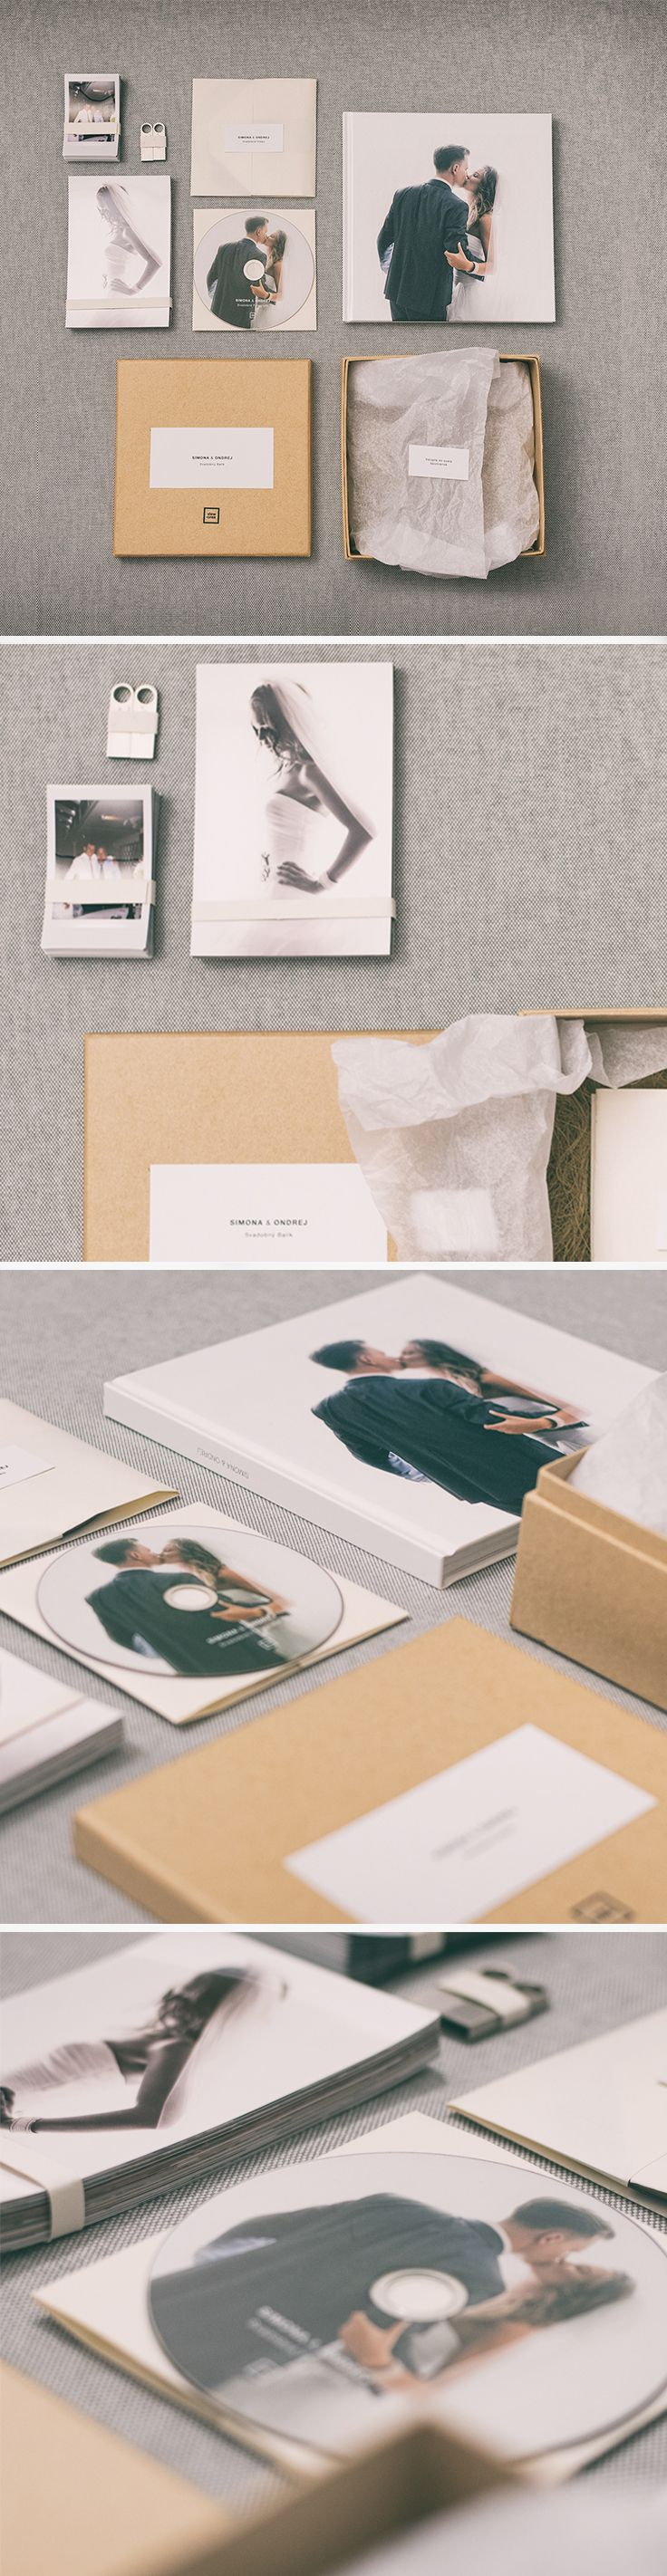 Classic Wedding packaging for USB, DVD, classic and instax photo.                                                                                                                                                      More